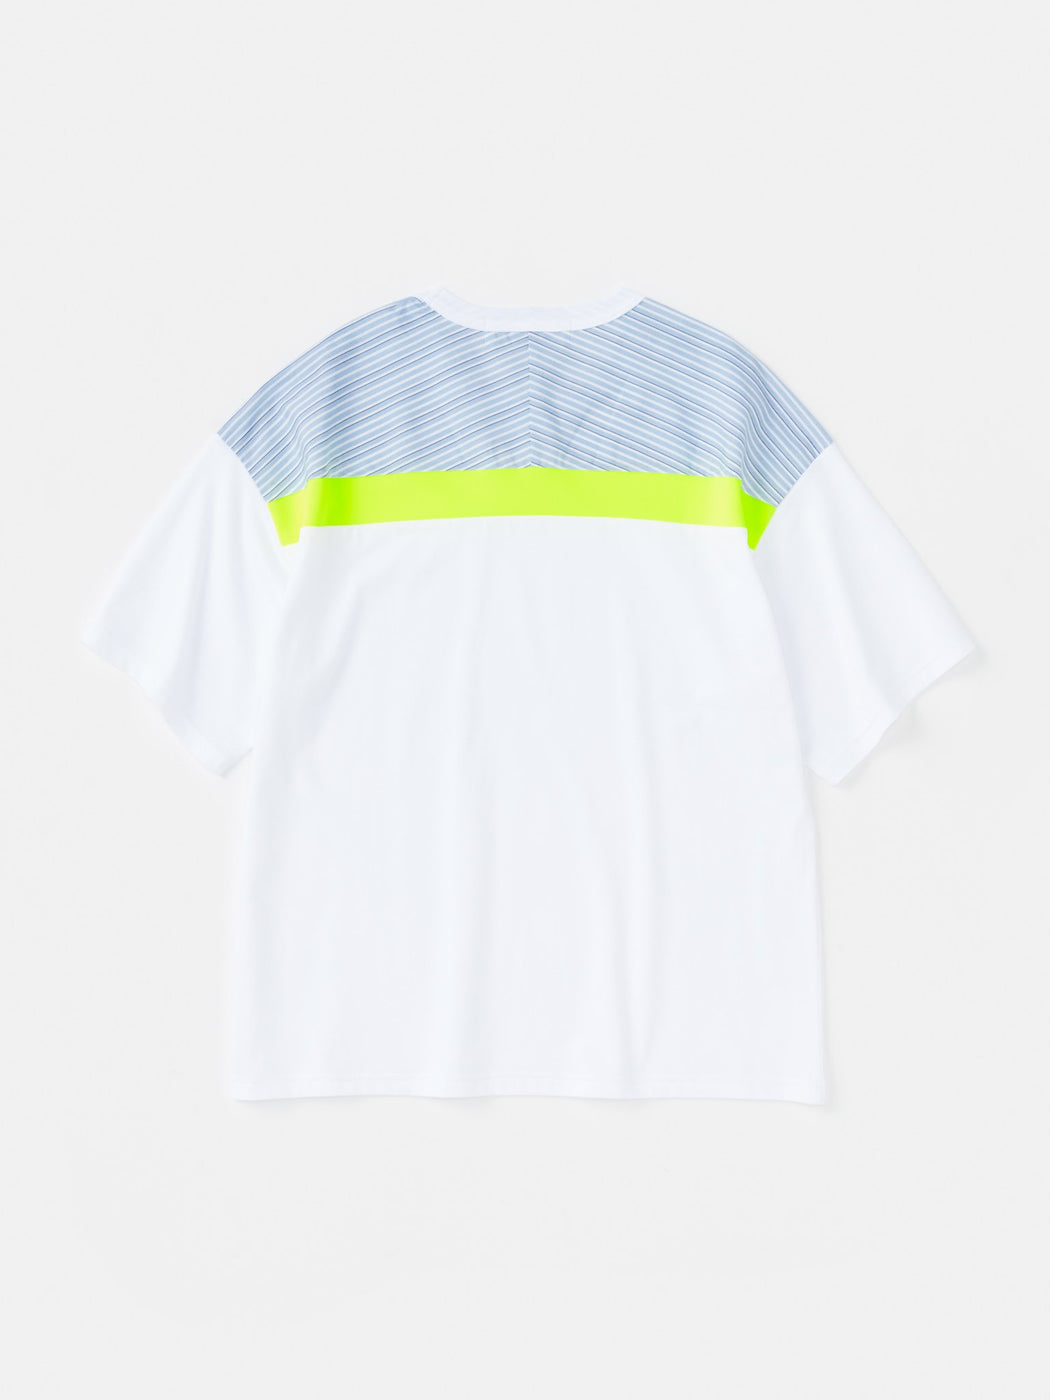 ALOYE Shirt Fabrics Short Sleeve Big Fit T-shirt Color